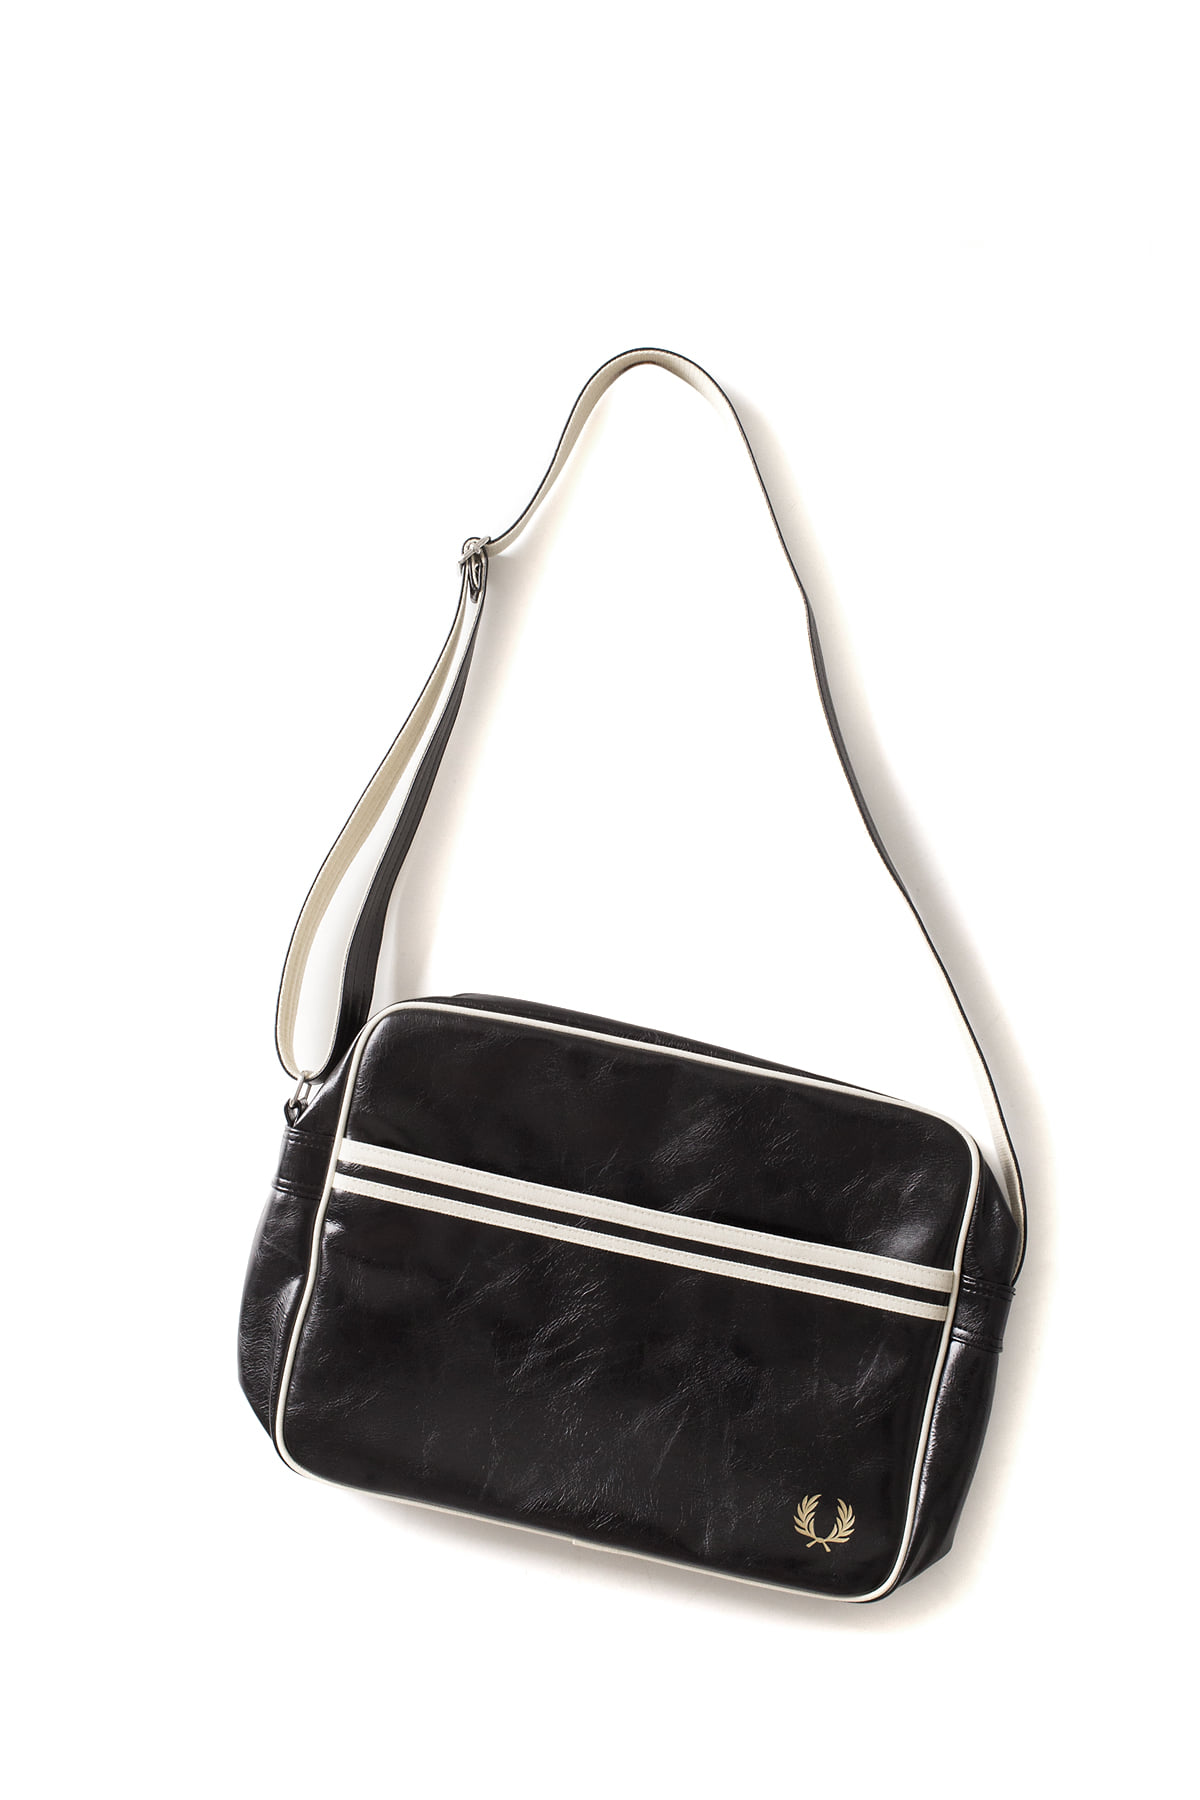 FRED PERRY : Classic Shoulder Bag (Black / Ecru)